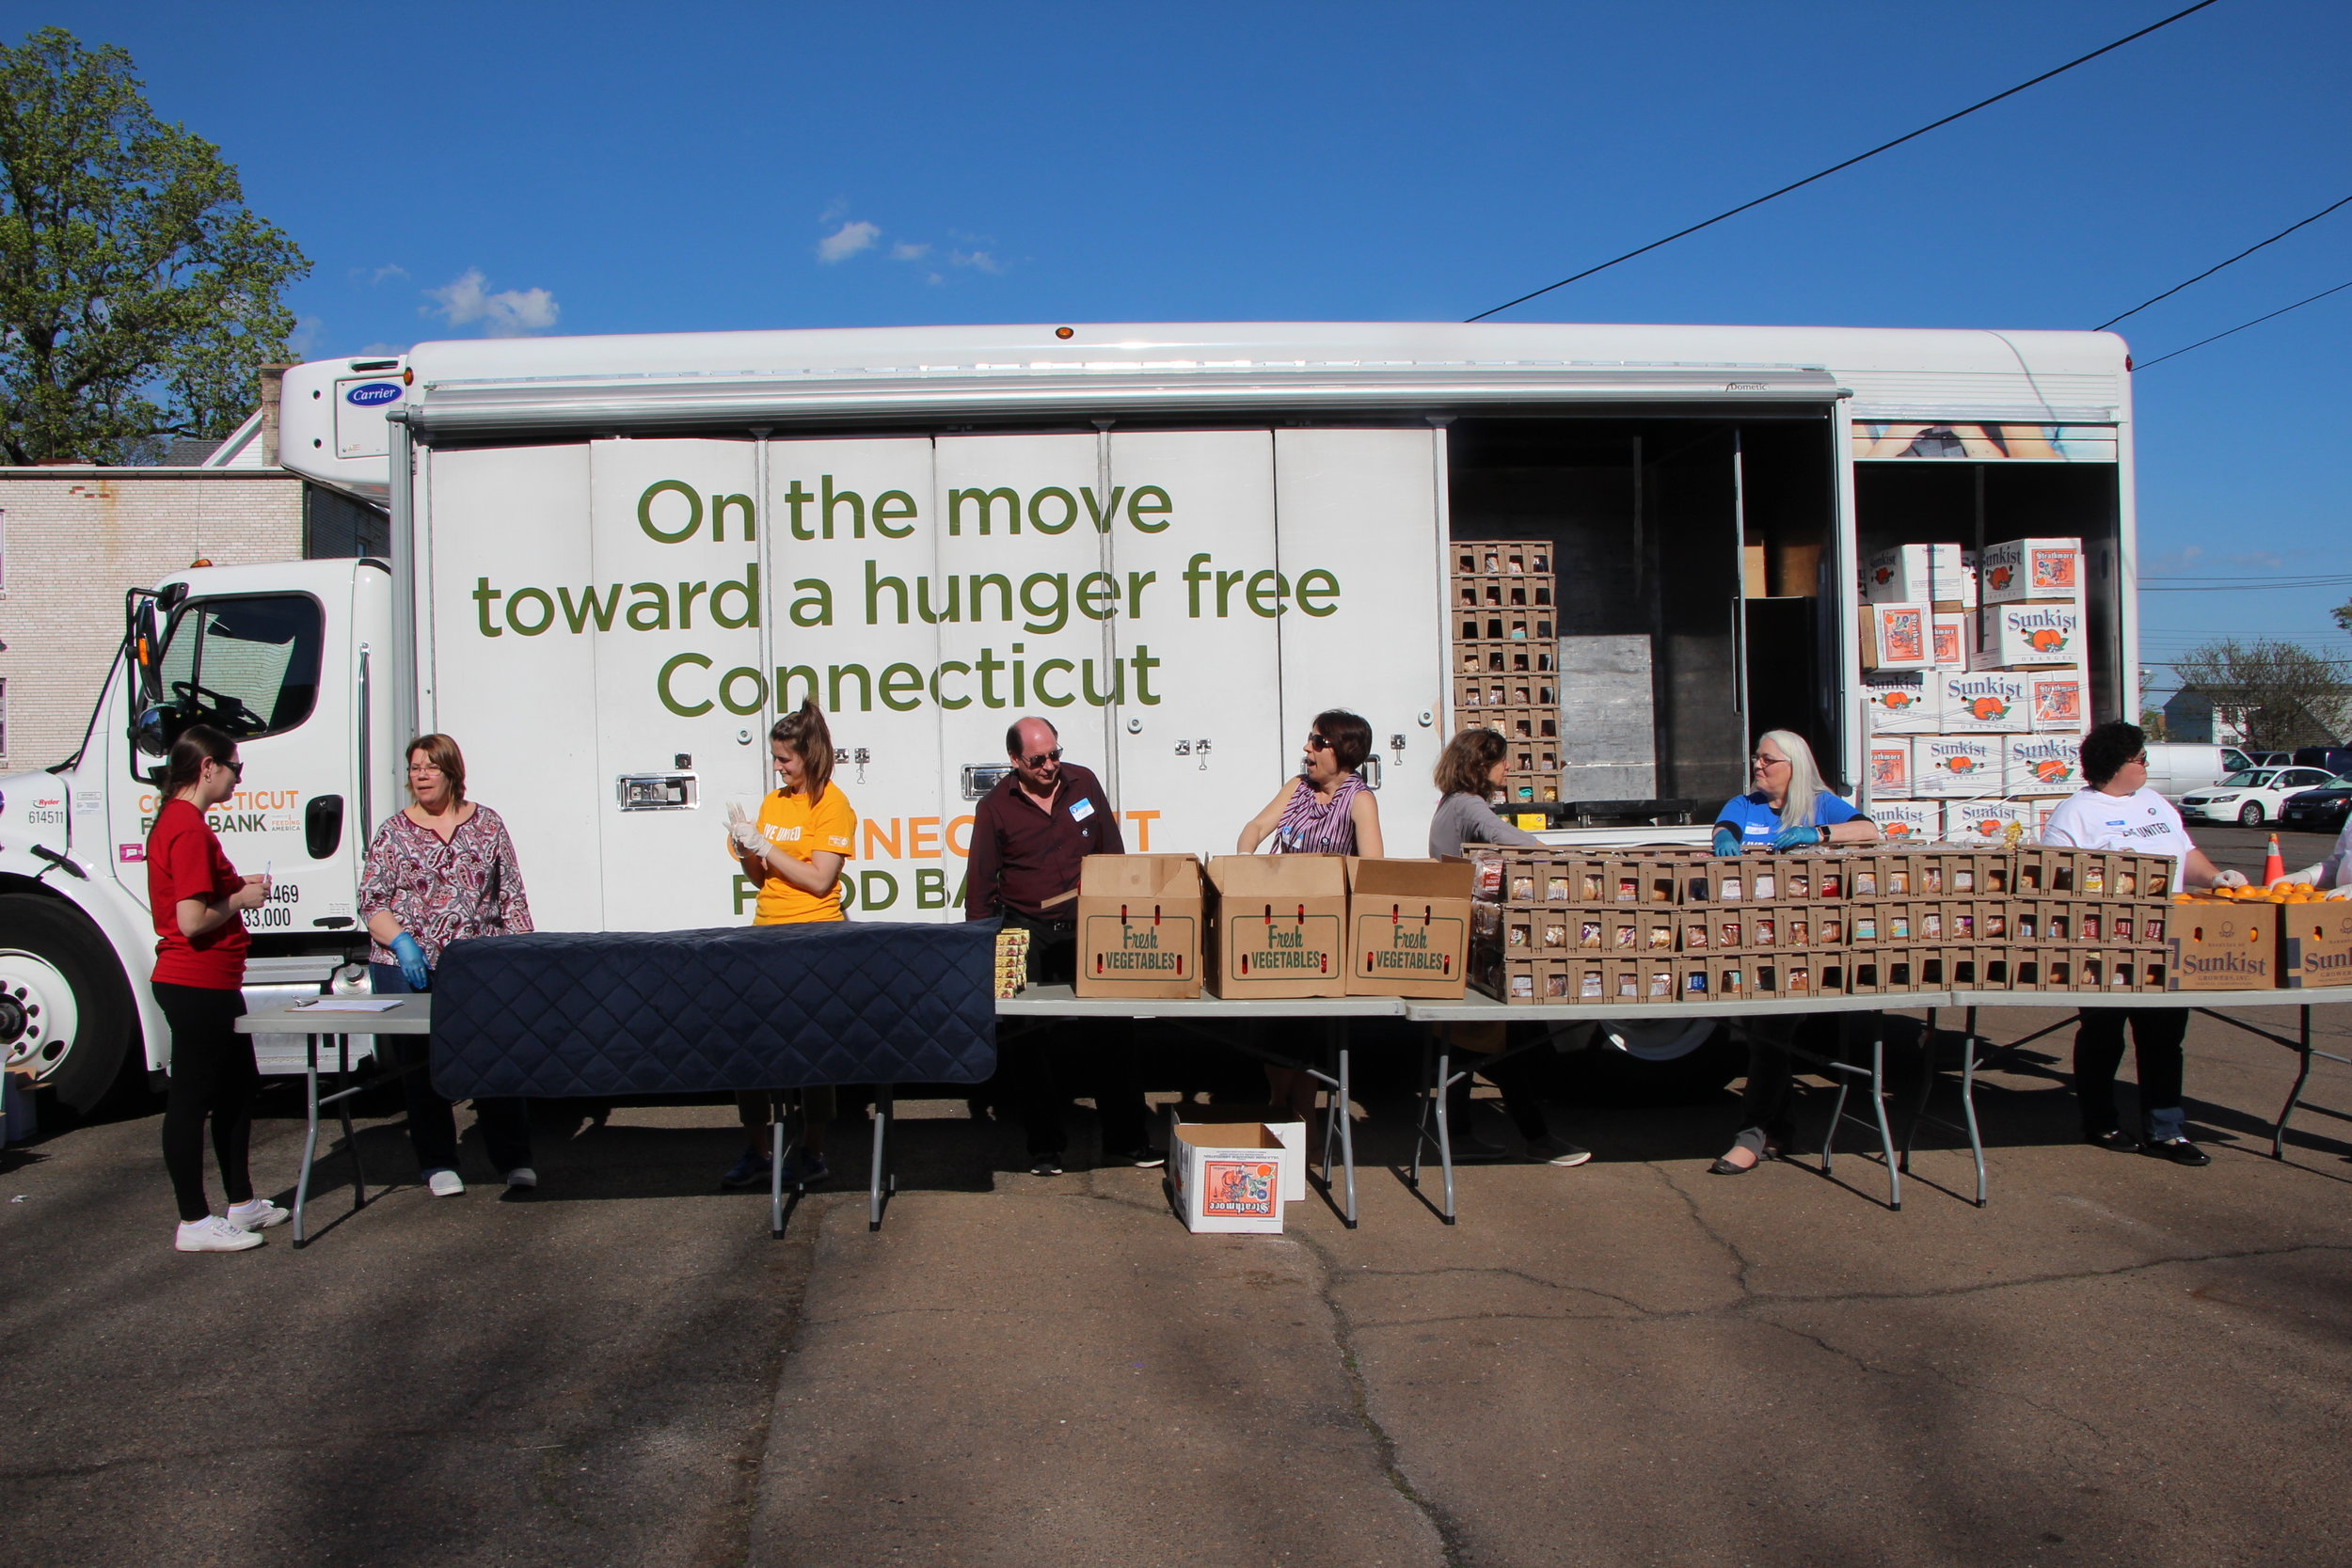 Volunteers set up in front of the Connecticut Food Bank's mobile food pantry truck in The Christ the Bread of Life Parish parking lot.